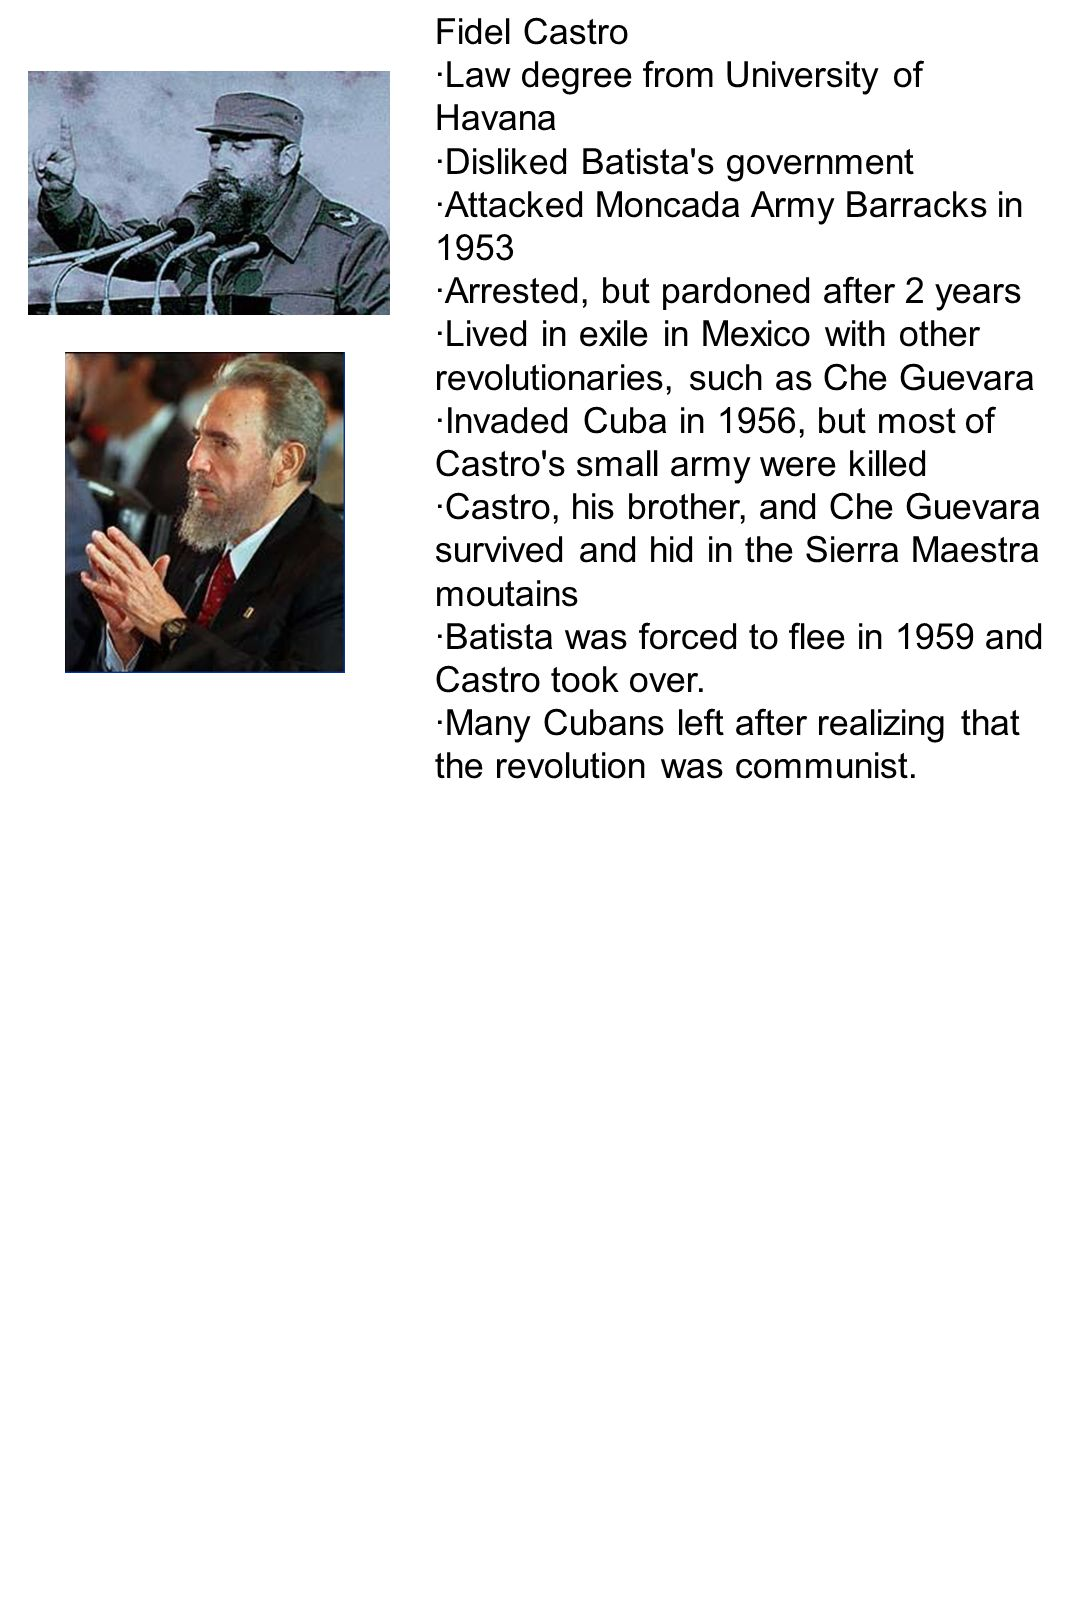 Fidel Castro ·Law degree from University of Havana. ·Disliked Batista s government. ·Attacked Moncada Army Barracks in 1953.